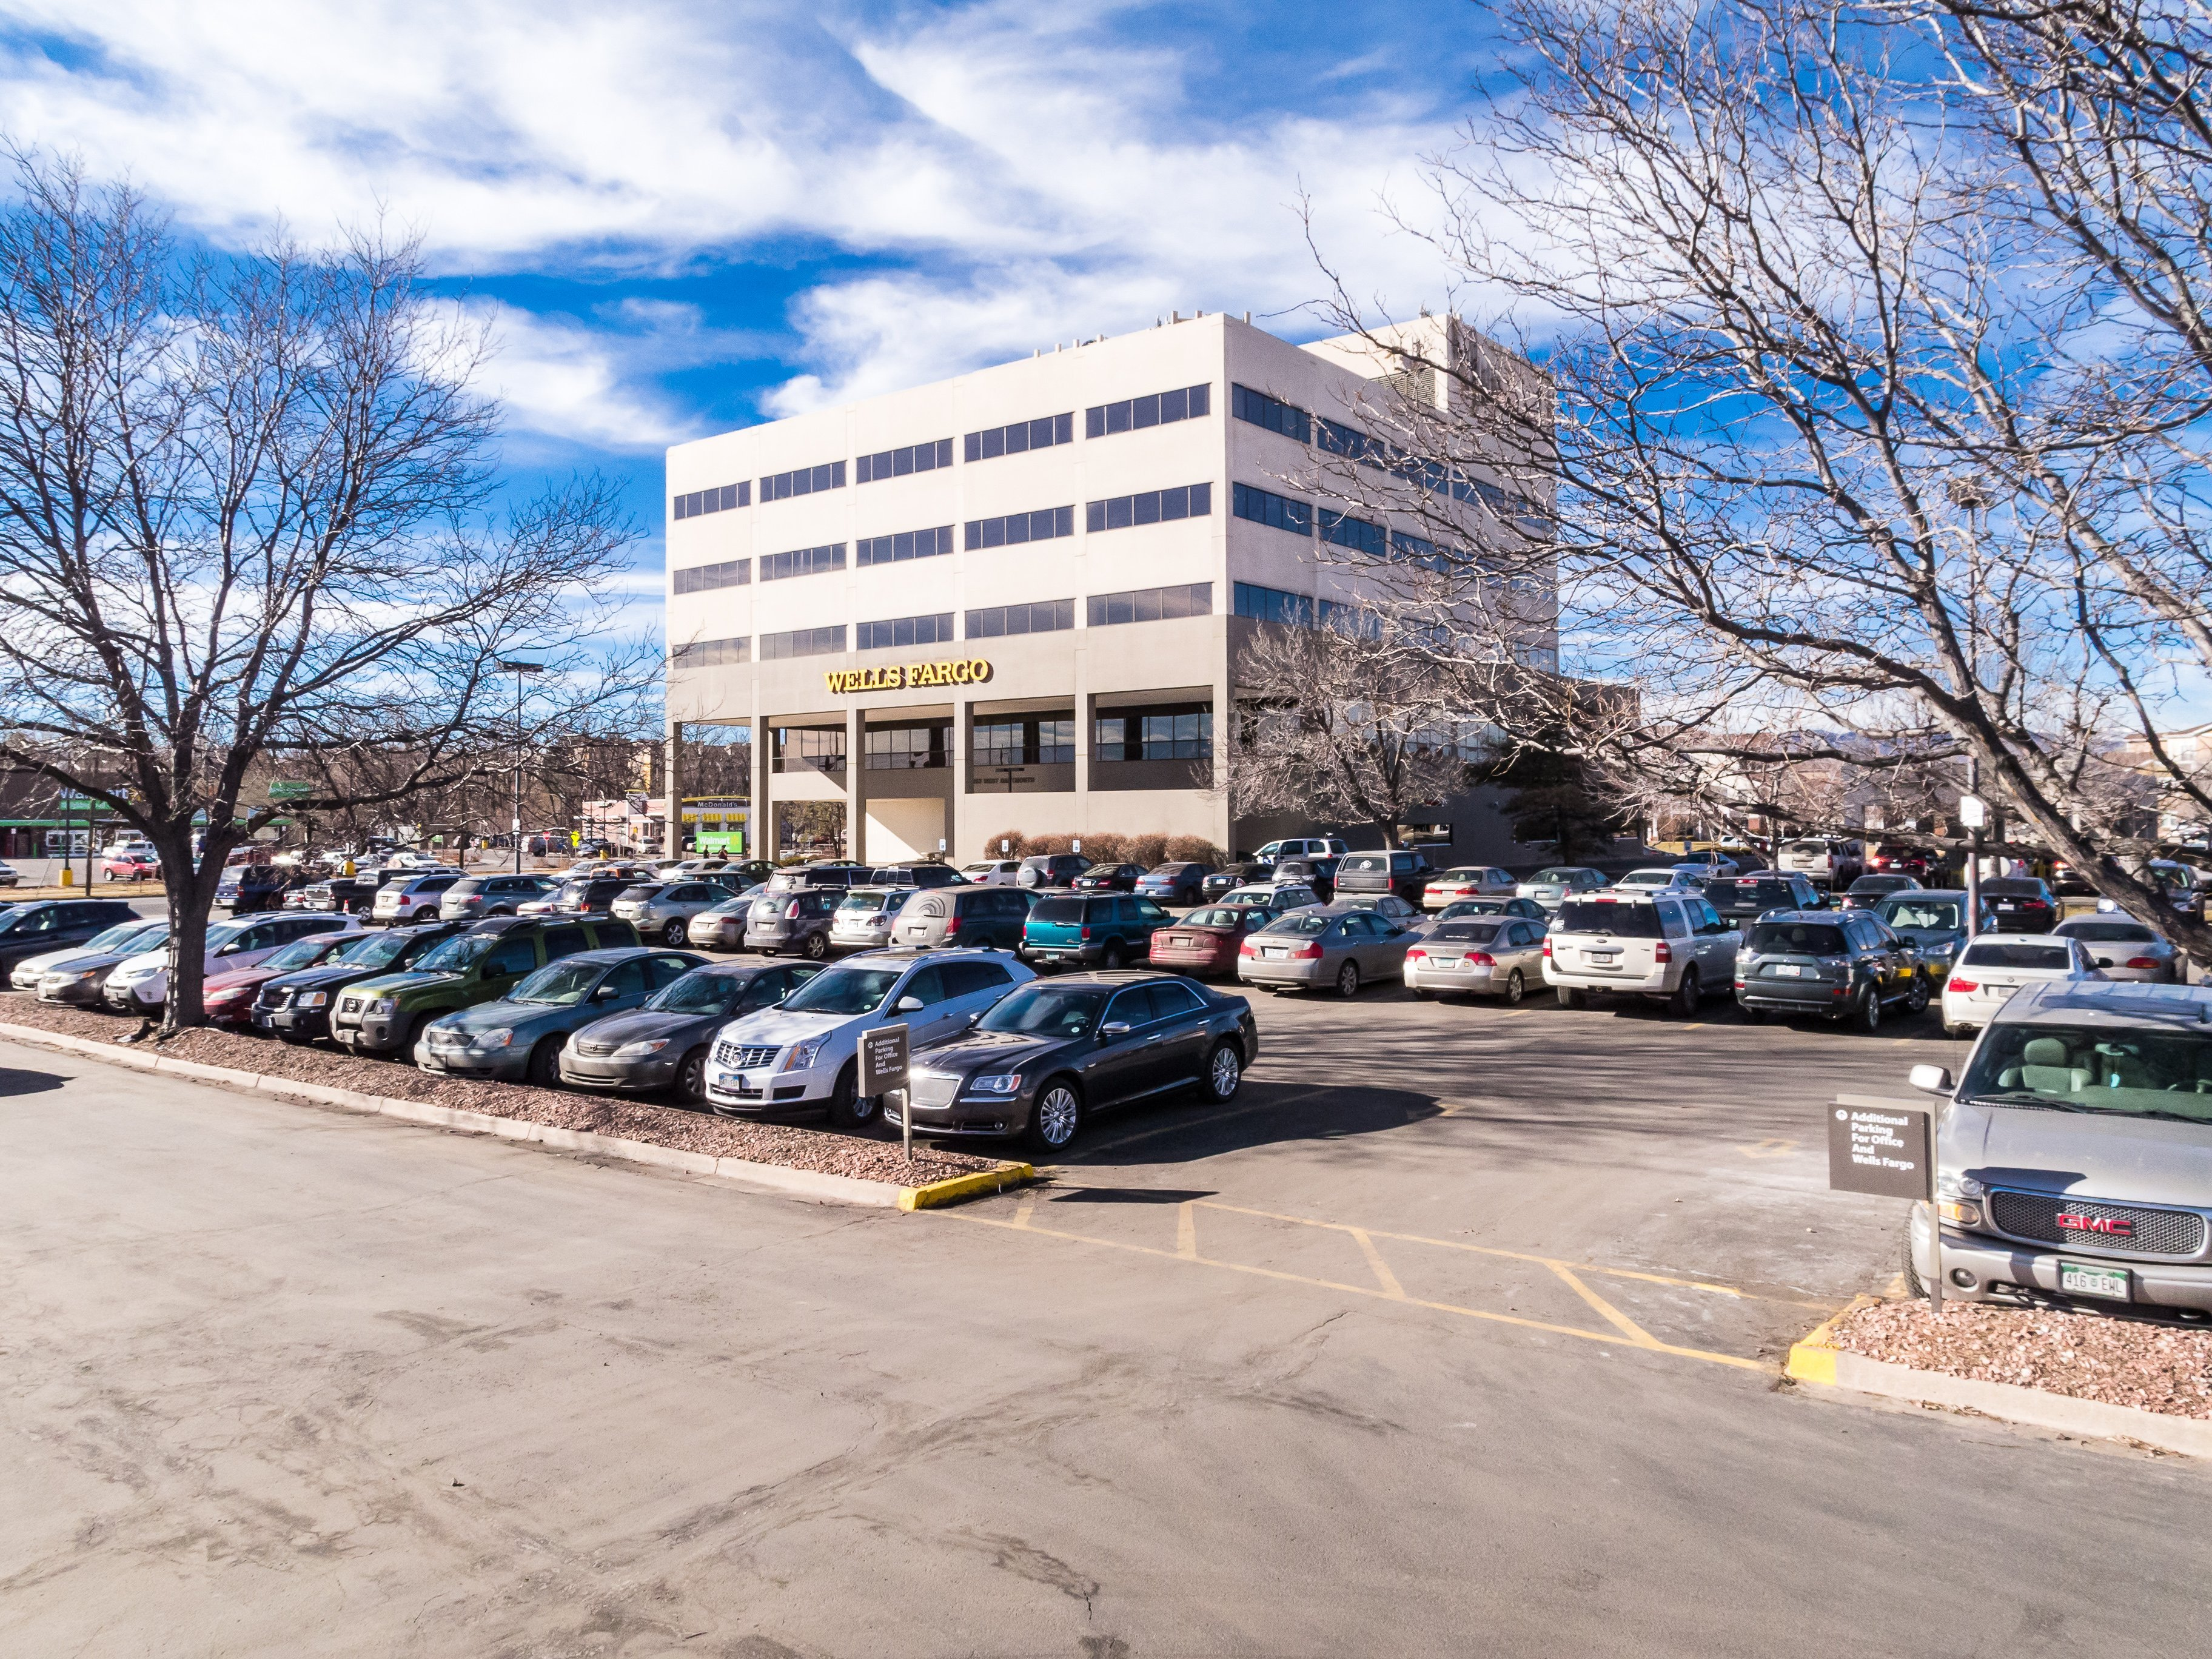 NavPoint Real Estate Group's sells 77,339 SF Office/Retail Building in Denver for $9,500,000